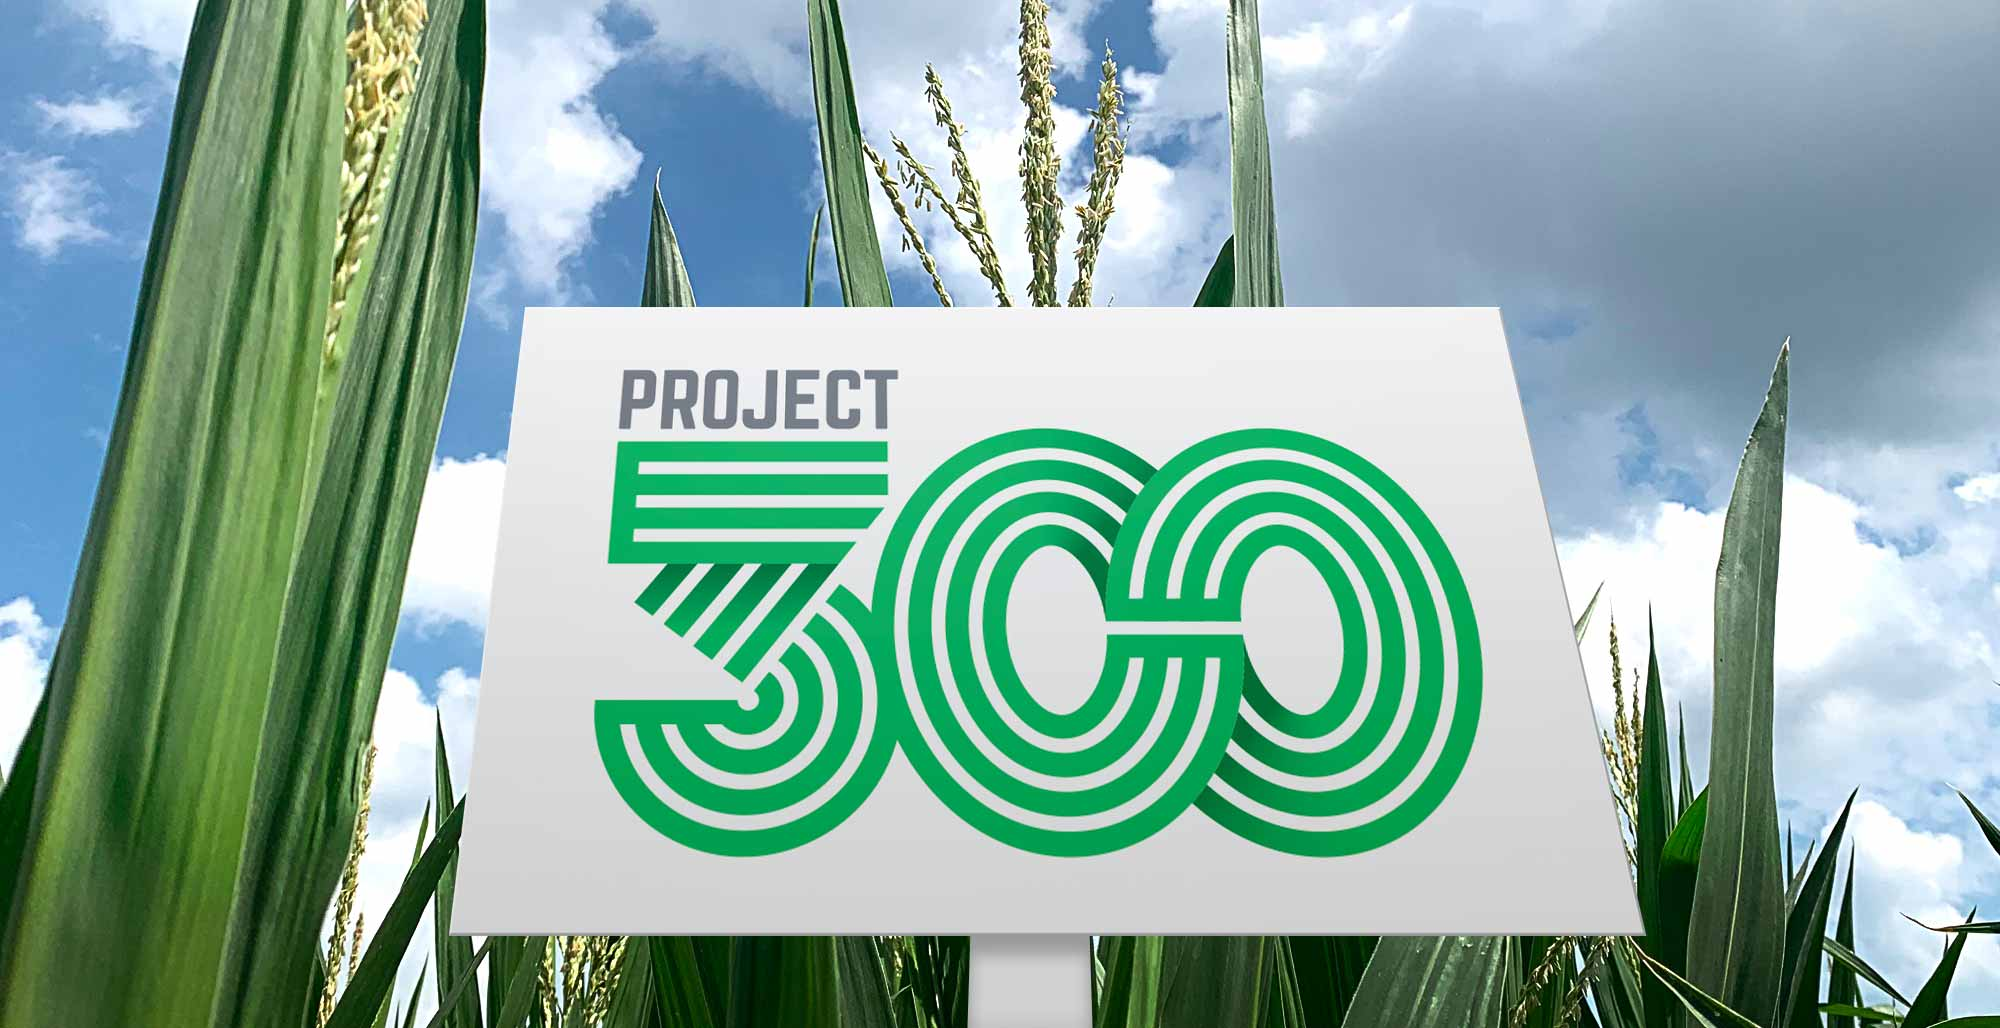 Project 300